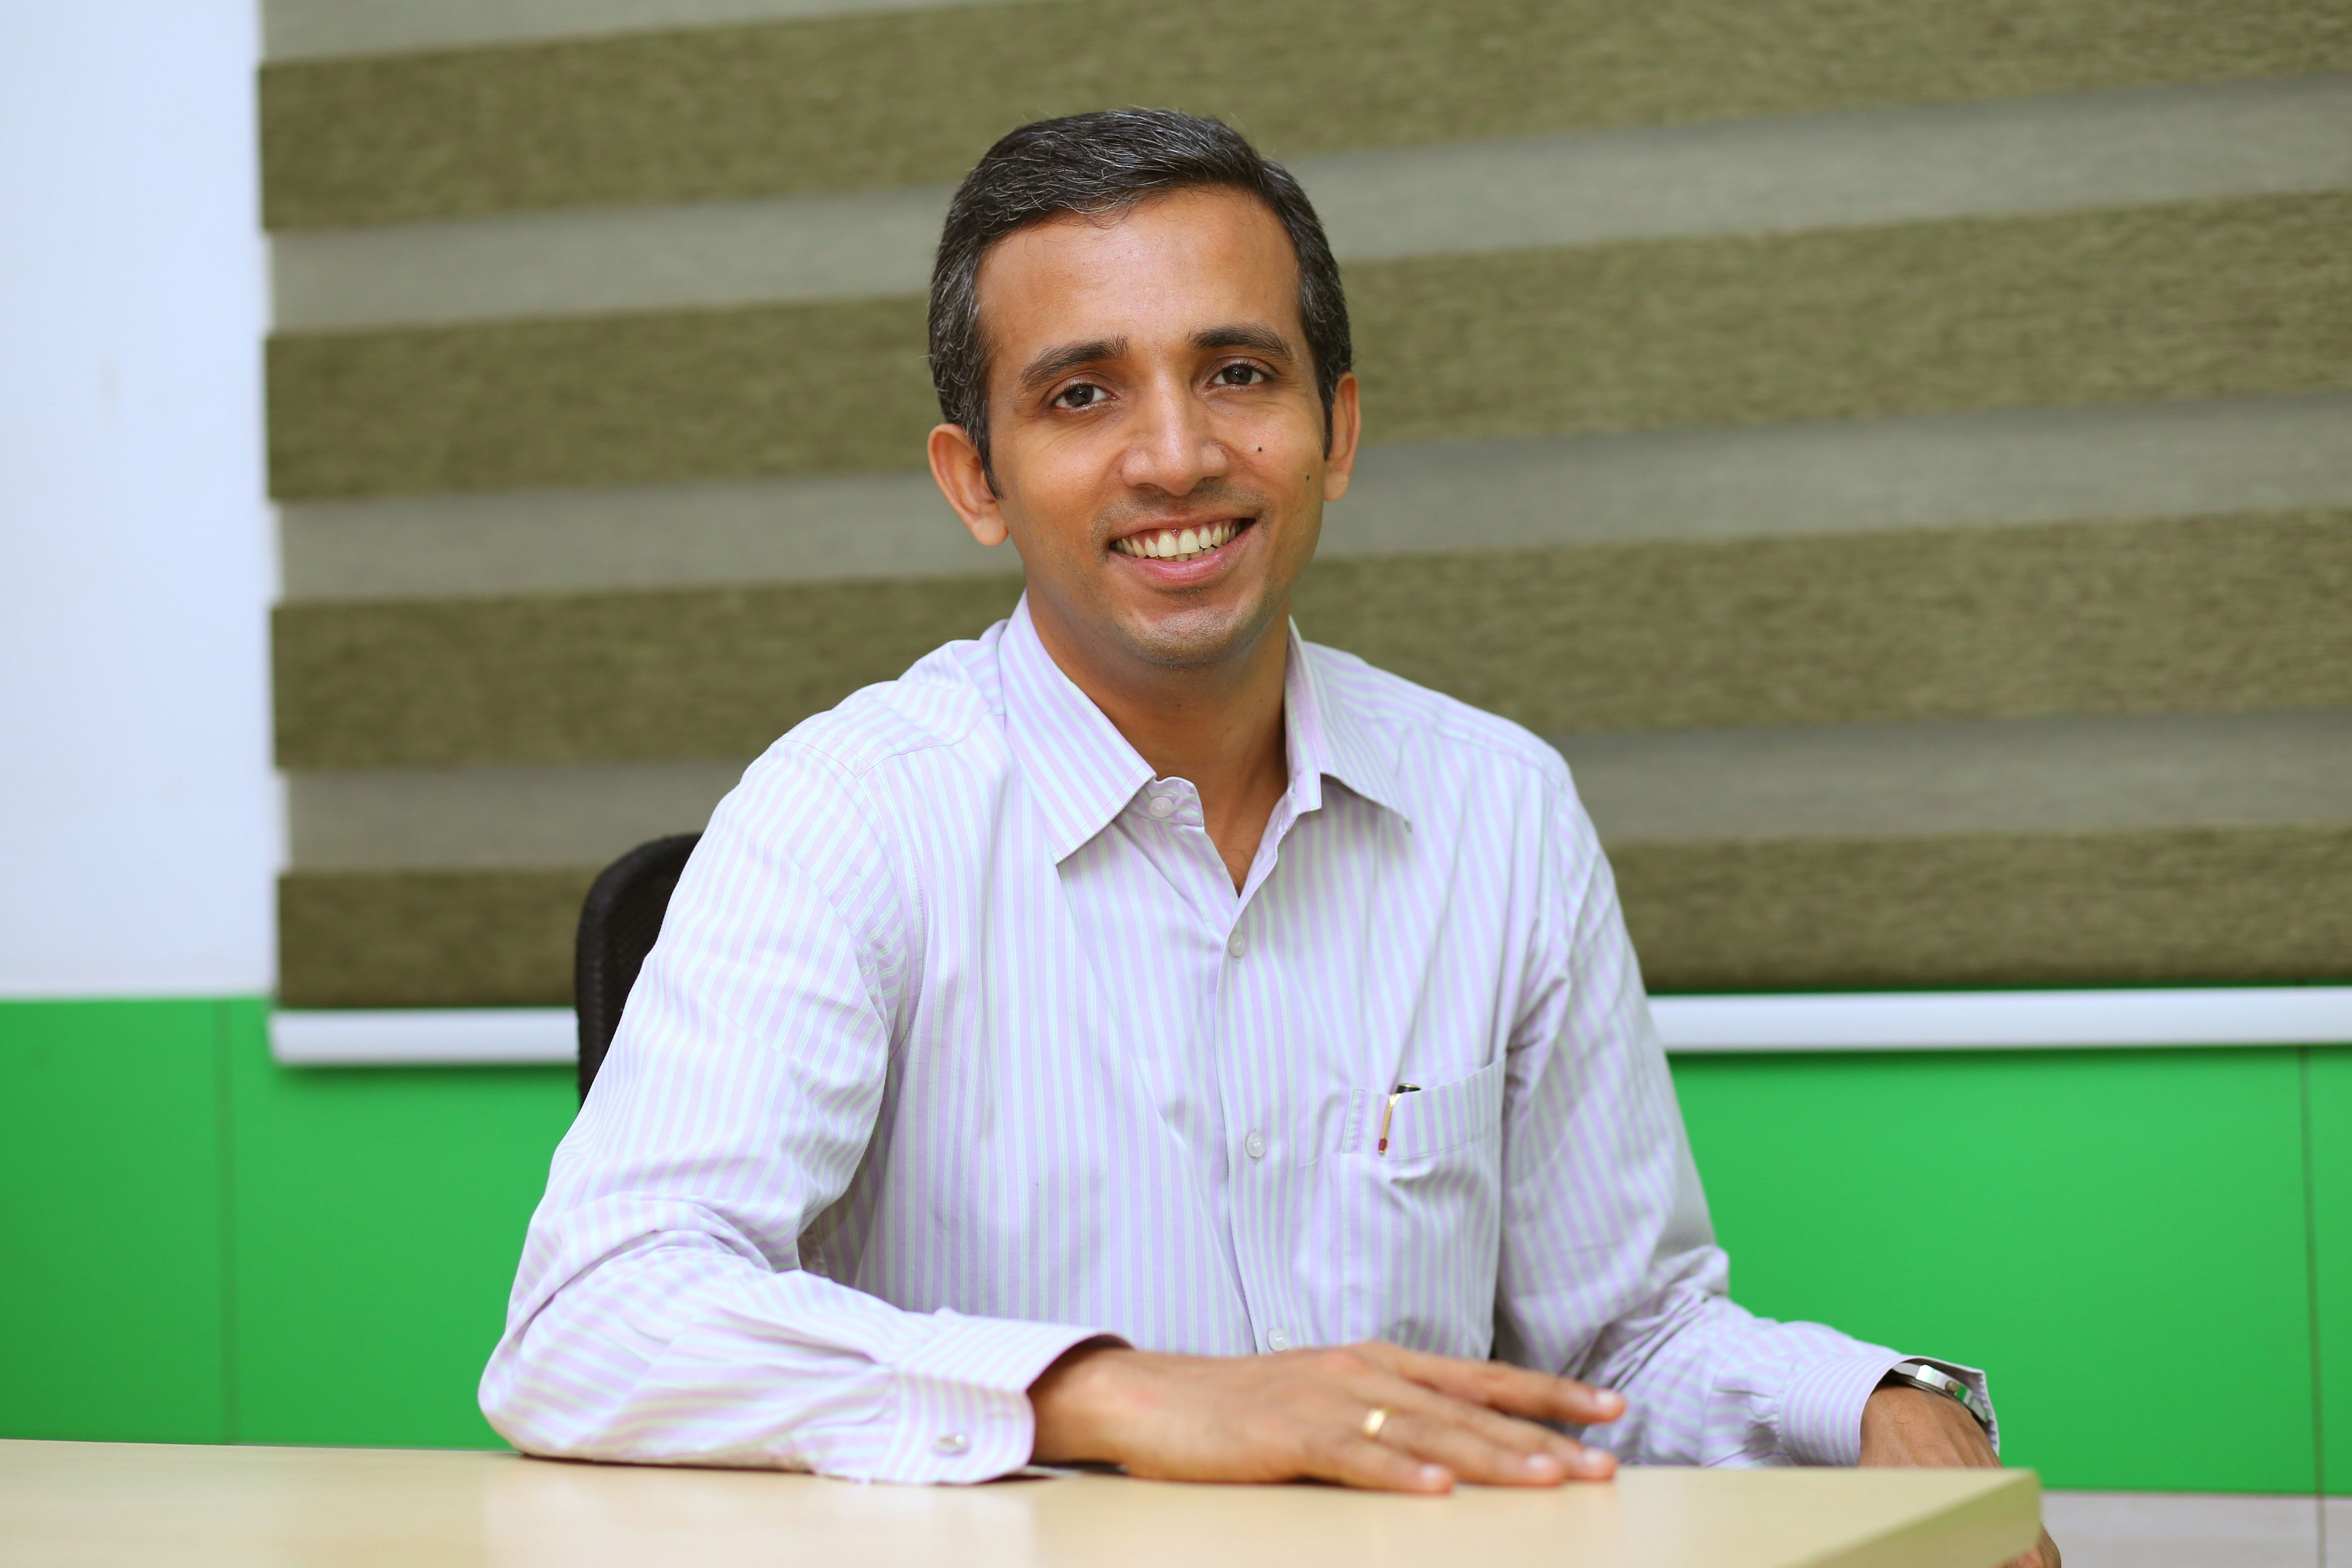 Sandith Thandassery, the maker of India's first solar boat in operation